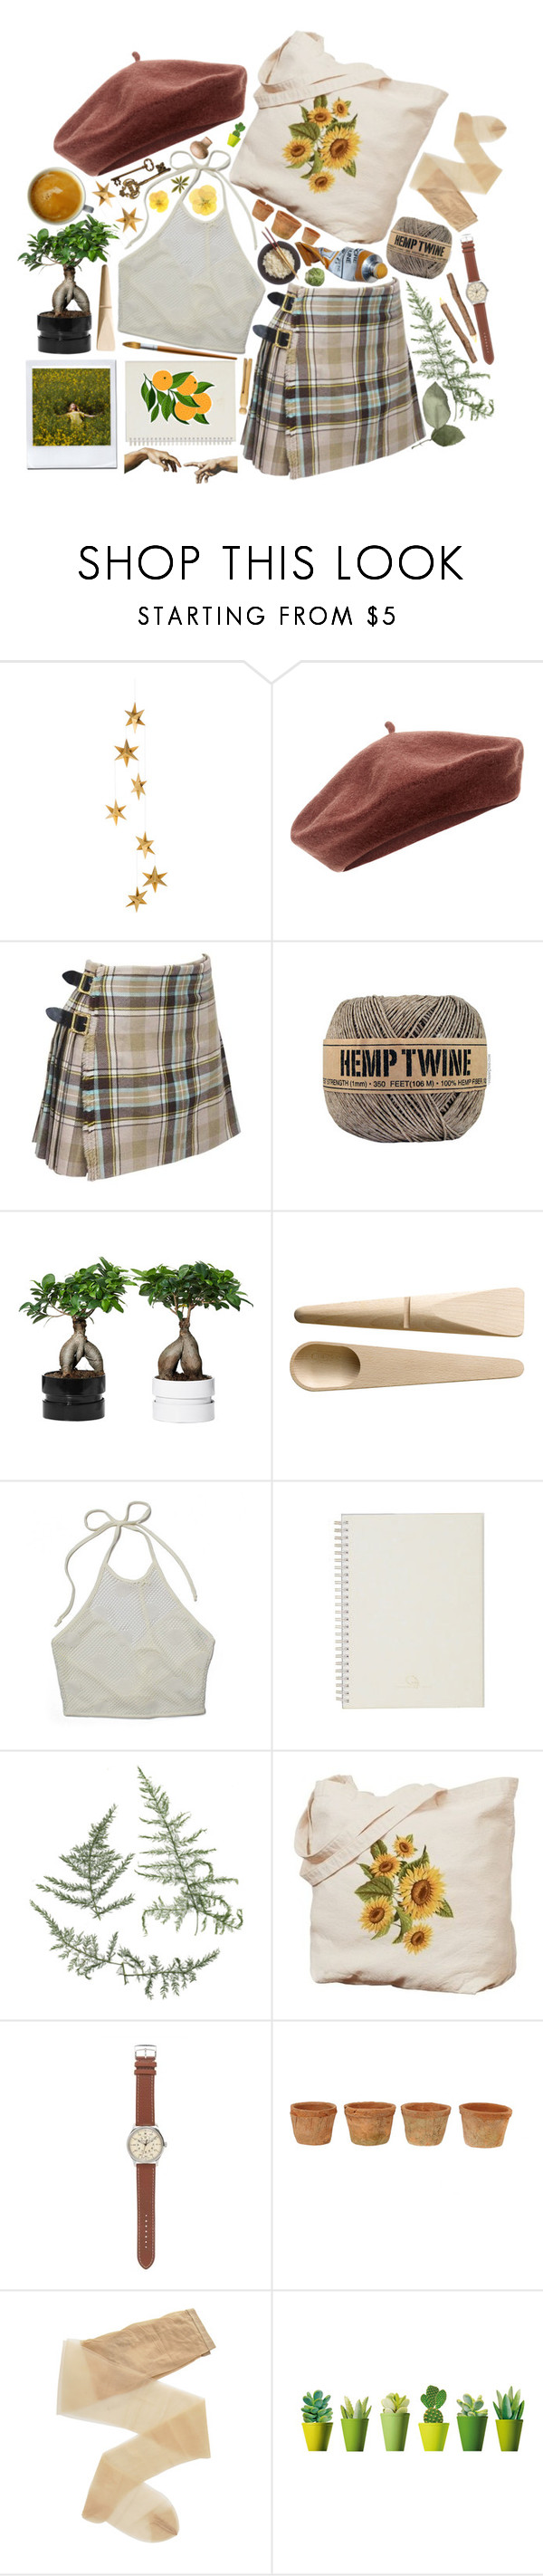 """""""She's Got The (French) Look"""" by hougach ❤ liked on Polyvore featuring Livingly, Accessorize, Vivienne Westwood, Muuto, J.Crew and Fogal"""